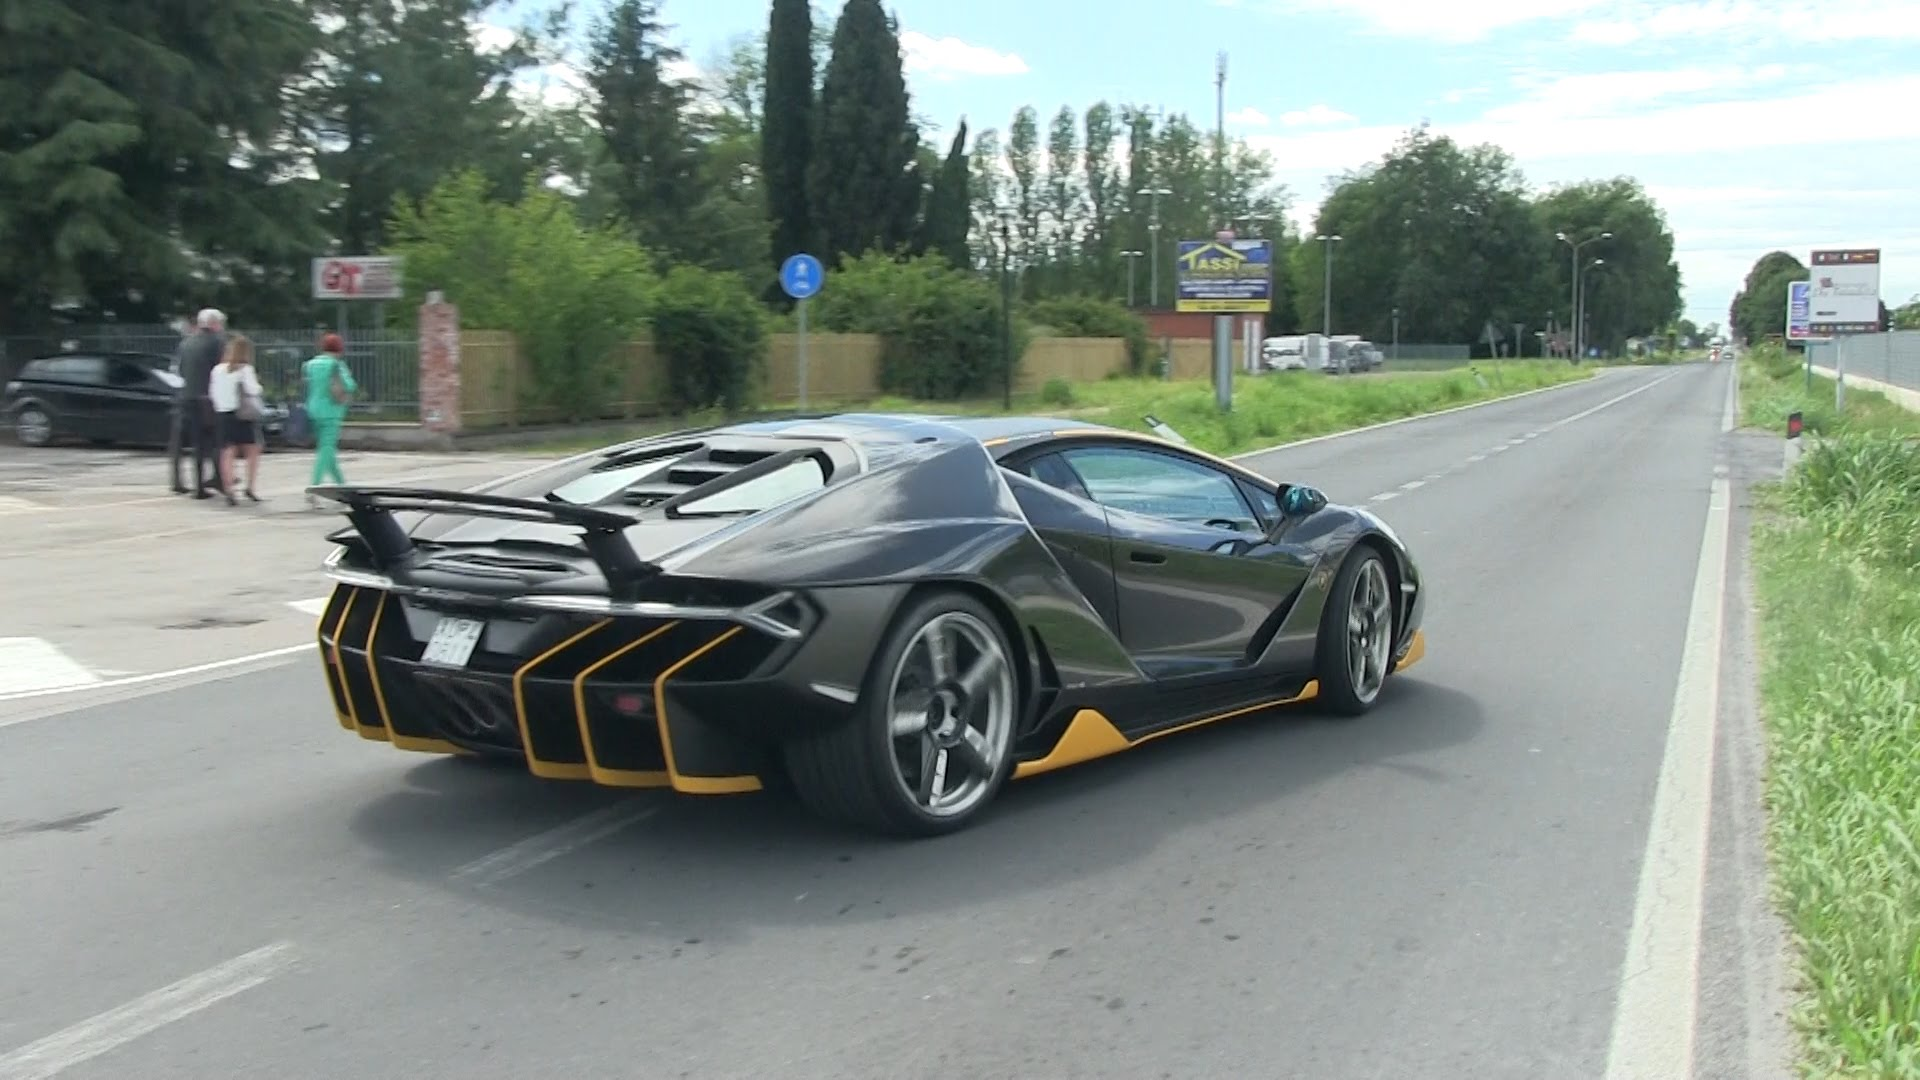 759HP Lamborghini Centenario Hits the Street